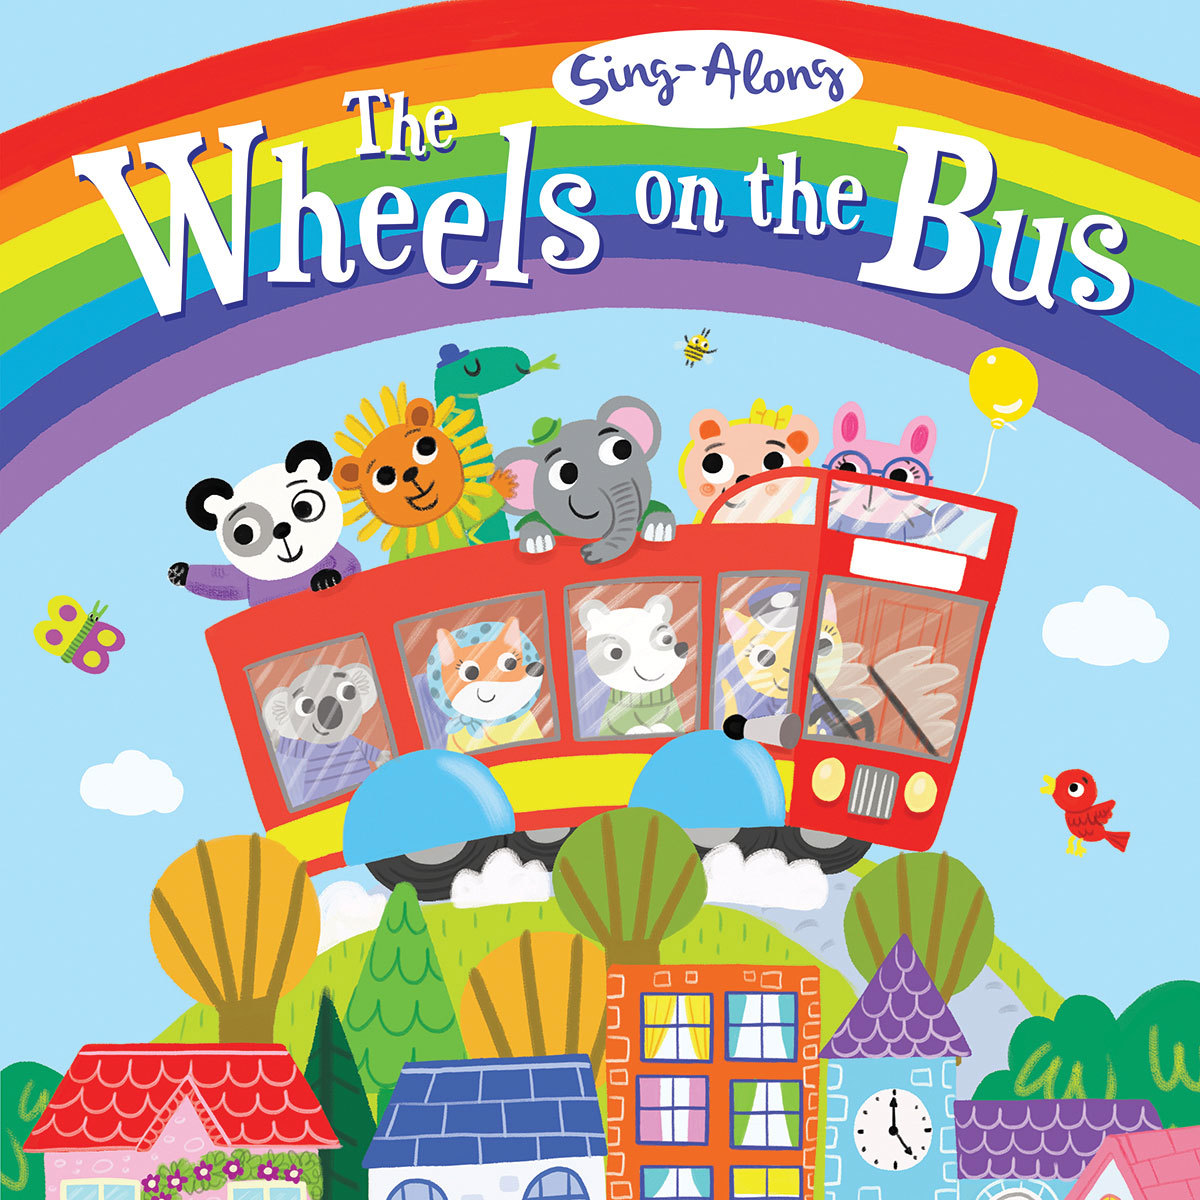 SING-ALONG THE WHEELS ON THE BUS